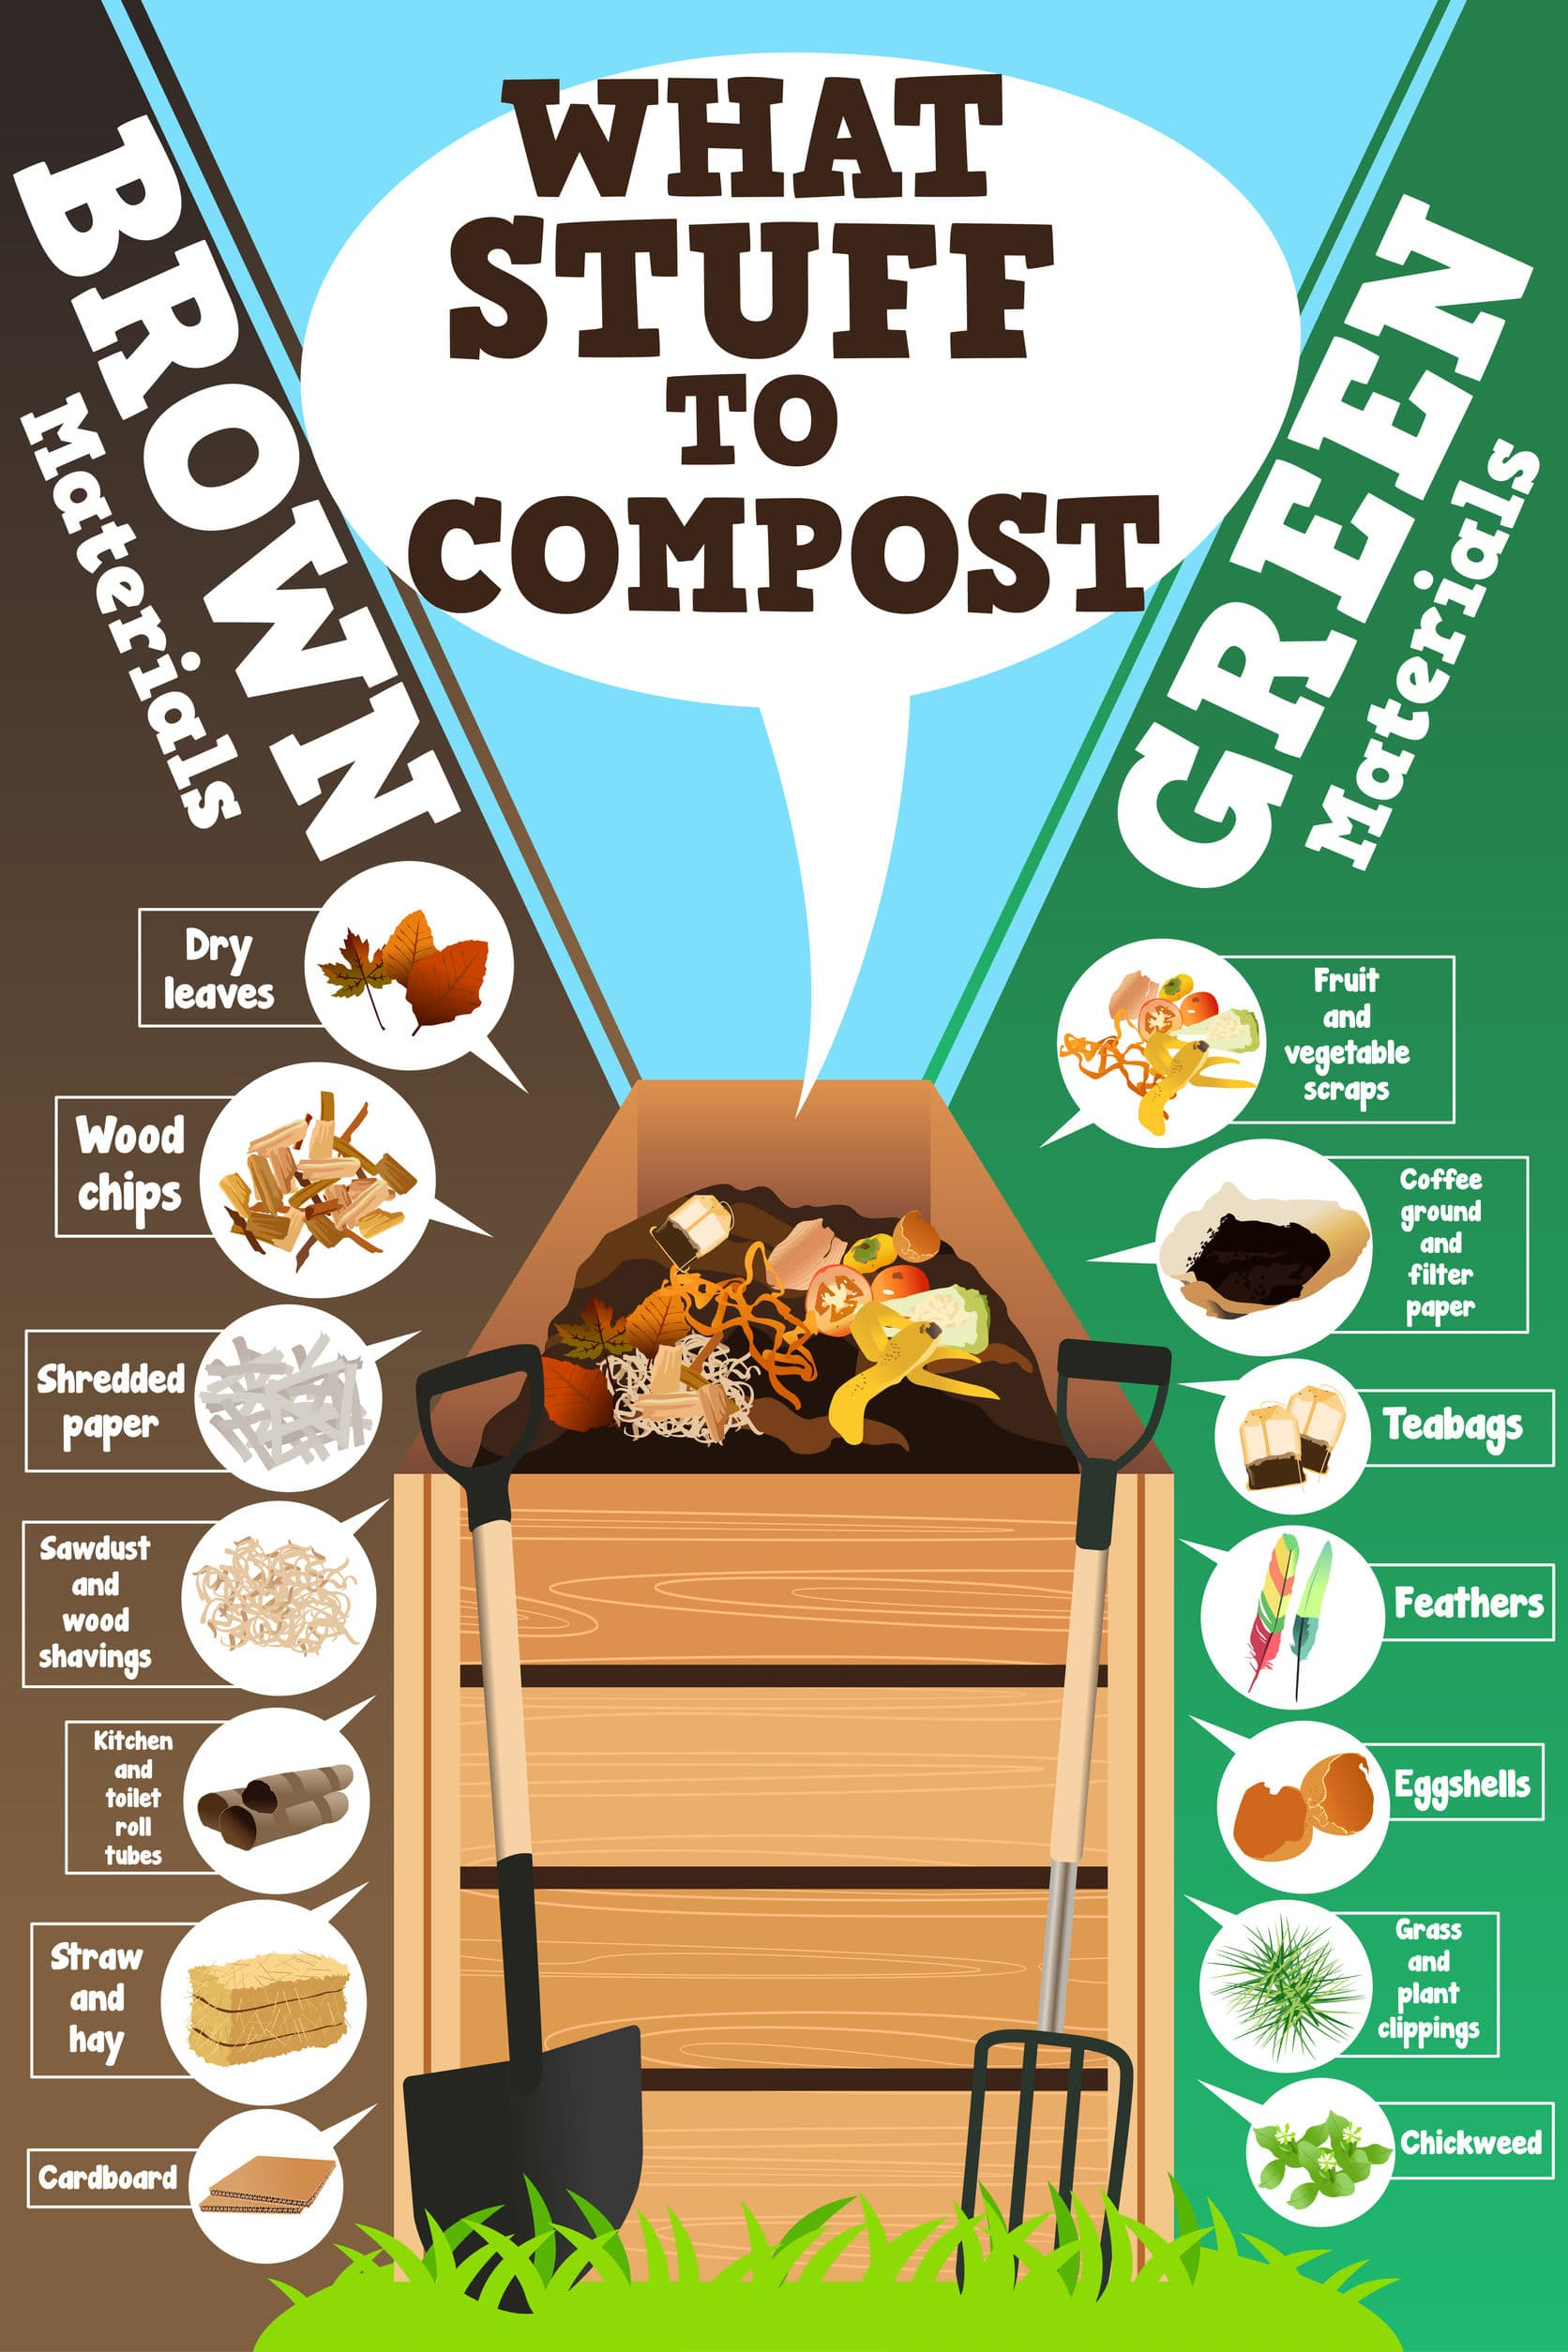 best leaves and Stuff for compost